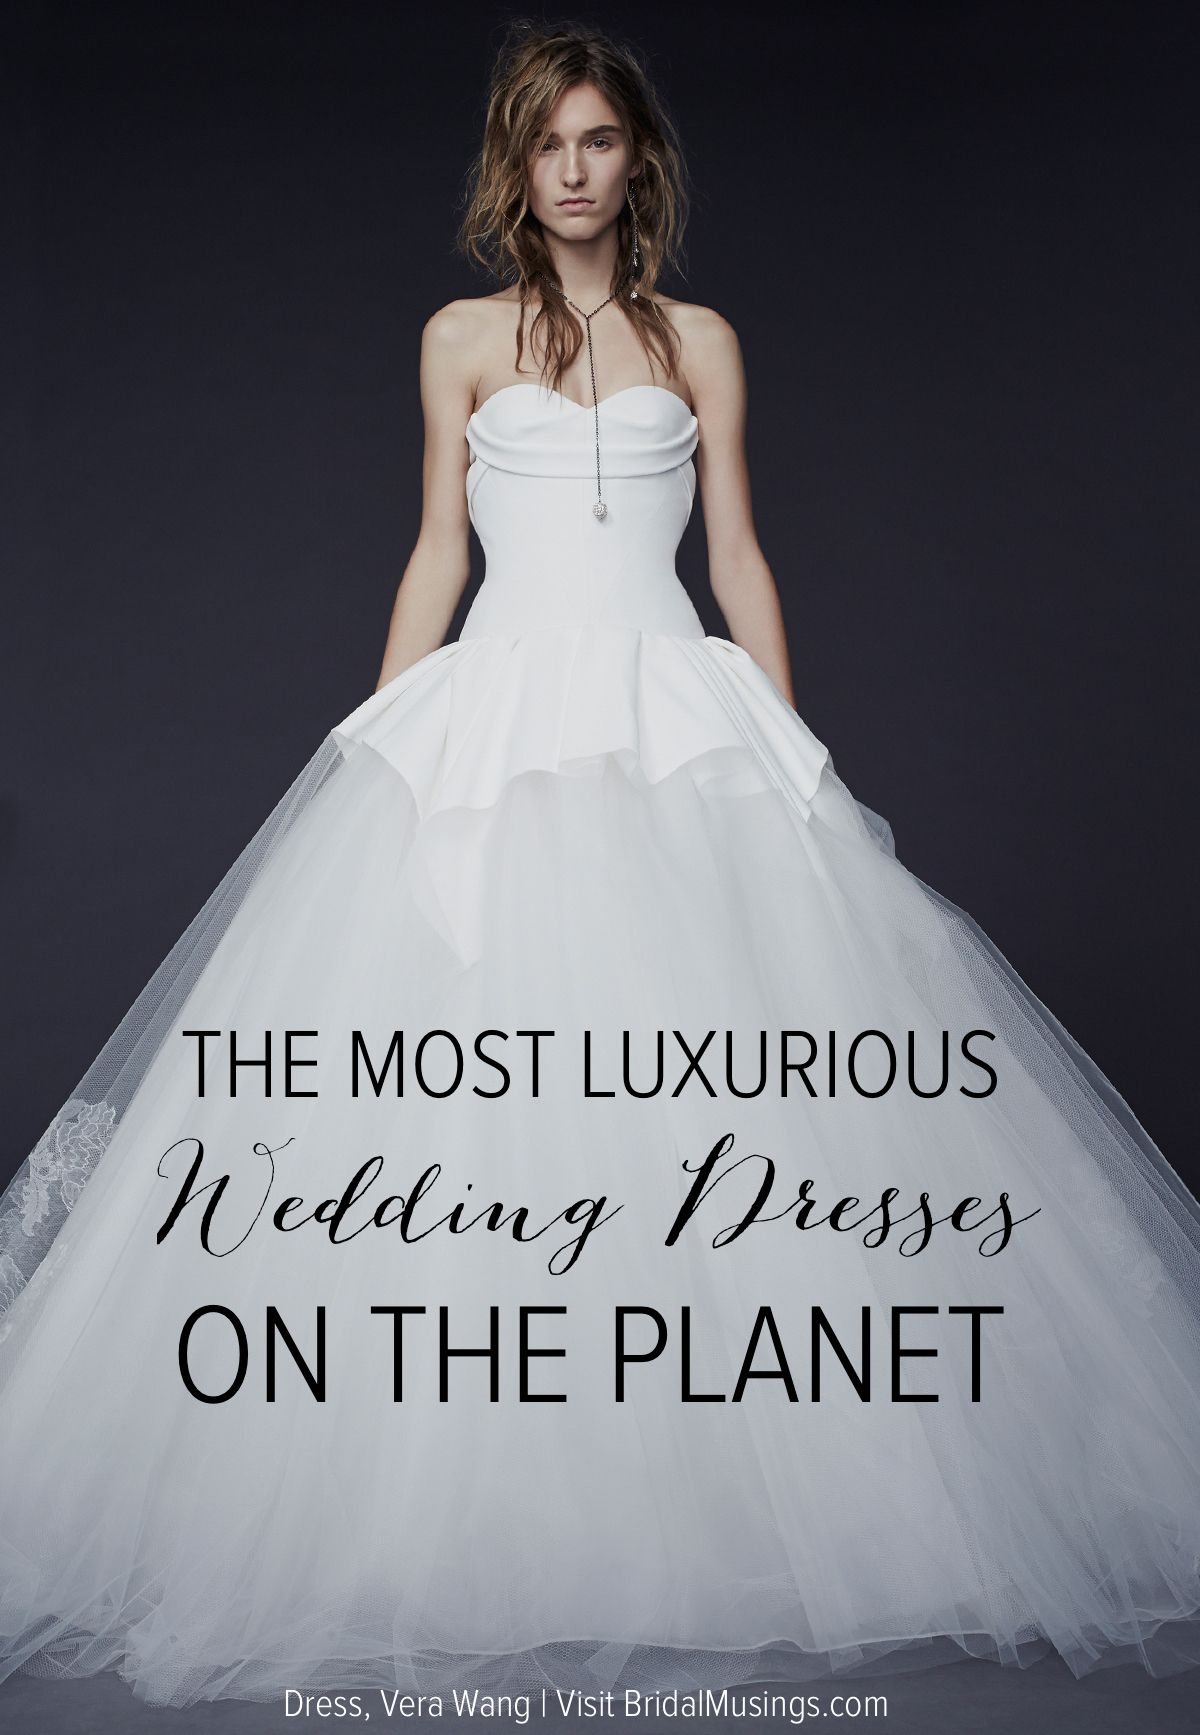 How Much Does a Wedding Dress Cost? The Couture Edition | Pinterest ...